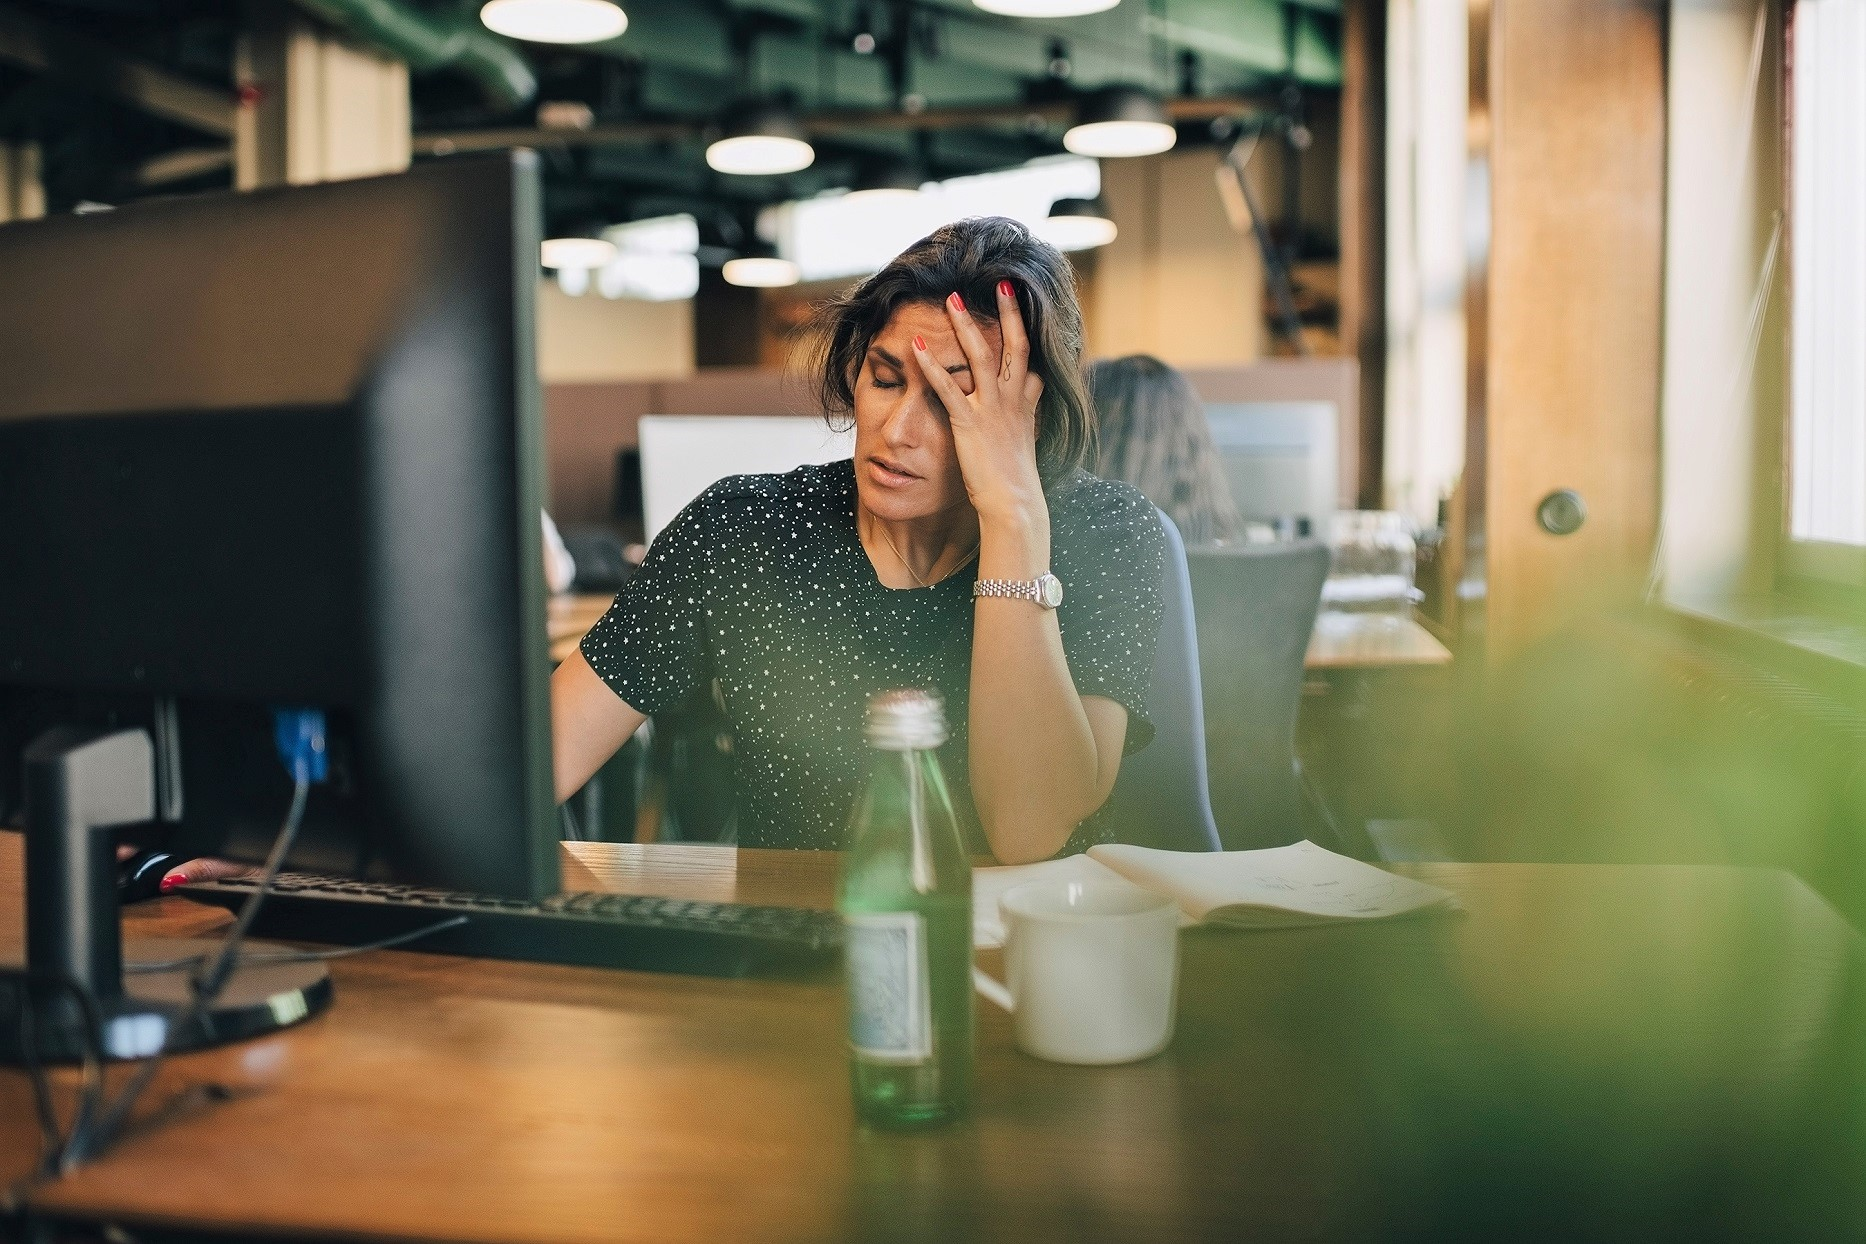 Woman Stressed Sitting In Desk At Work Hand on Face